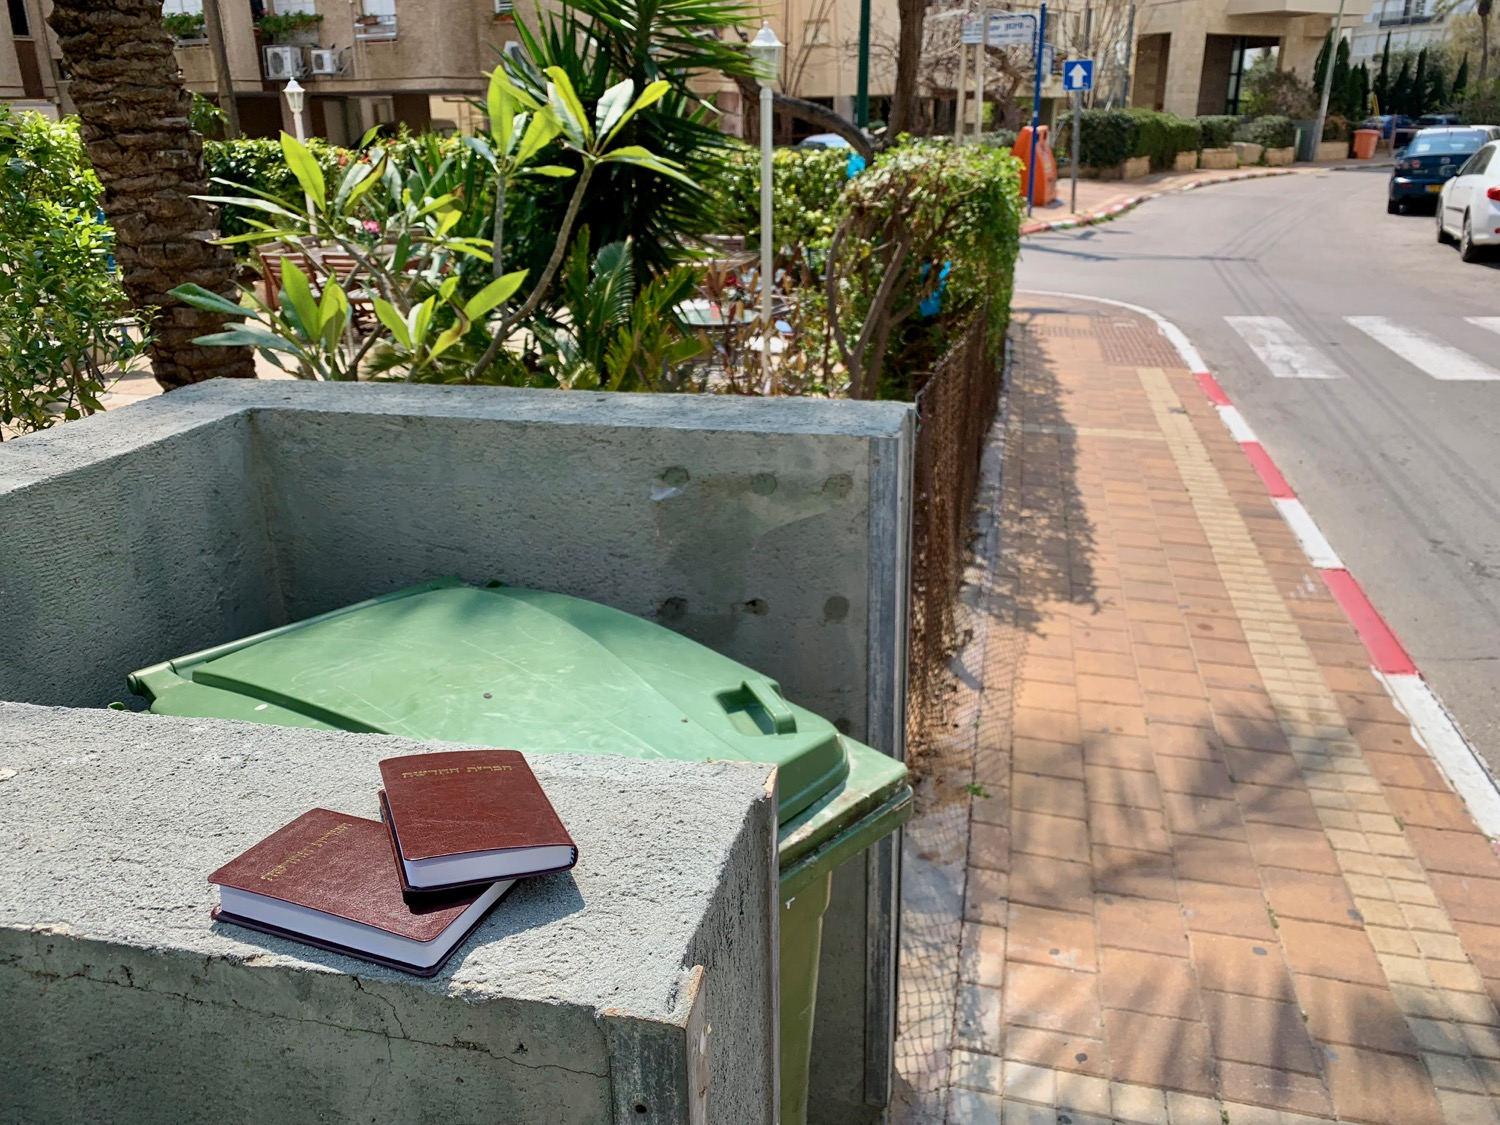 These Hebrew New Testaments were scarfed up by day's end in Netanya.